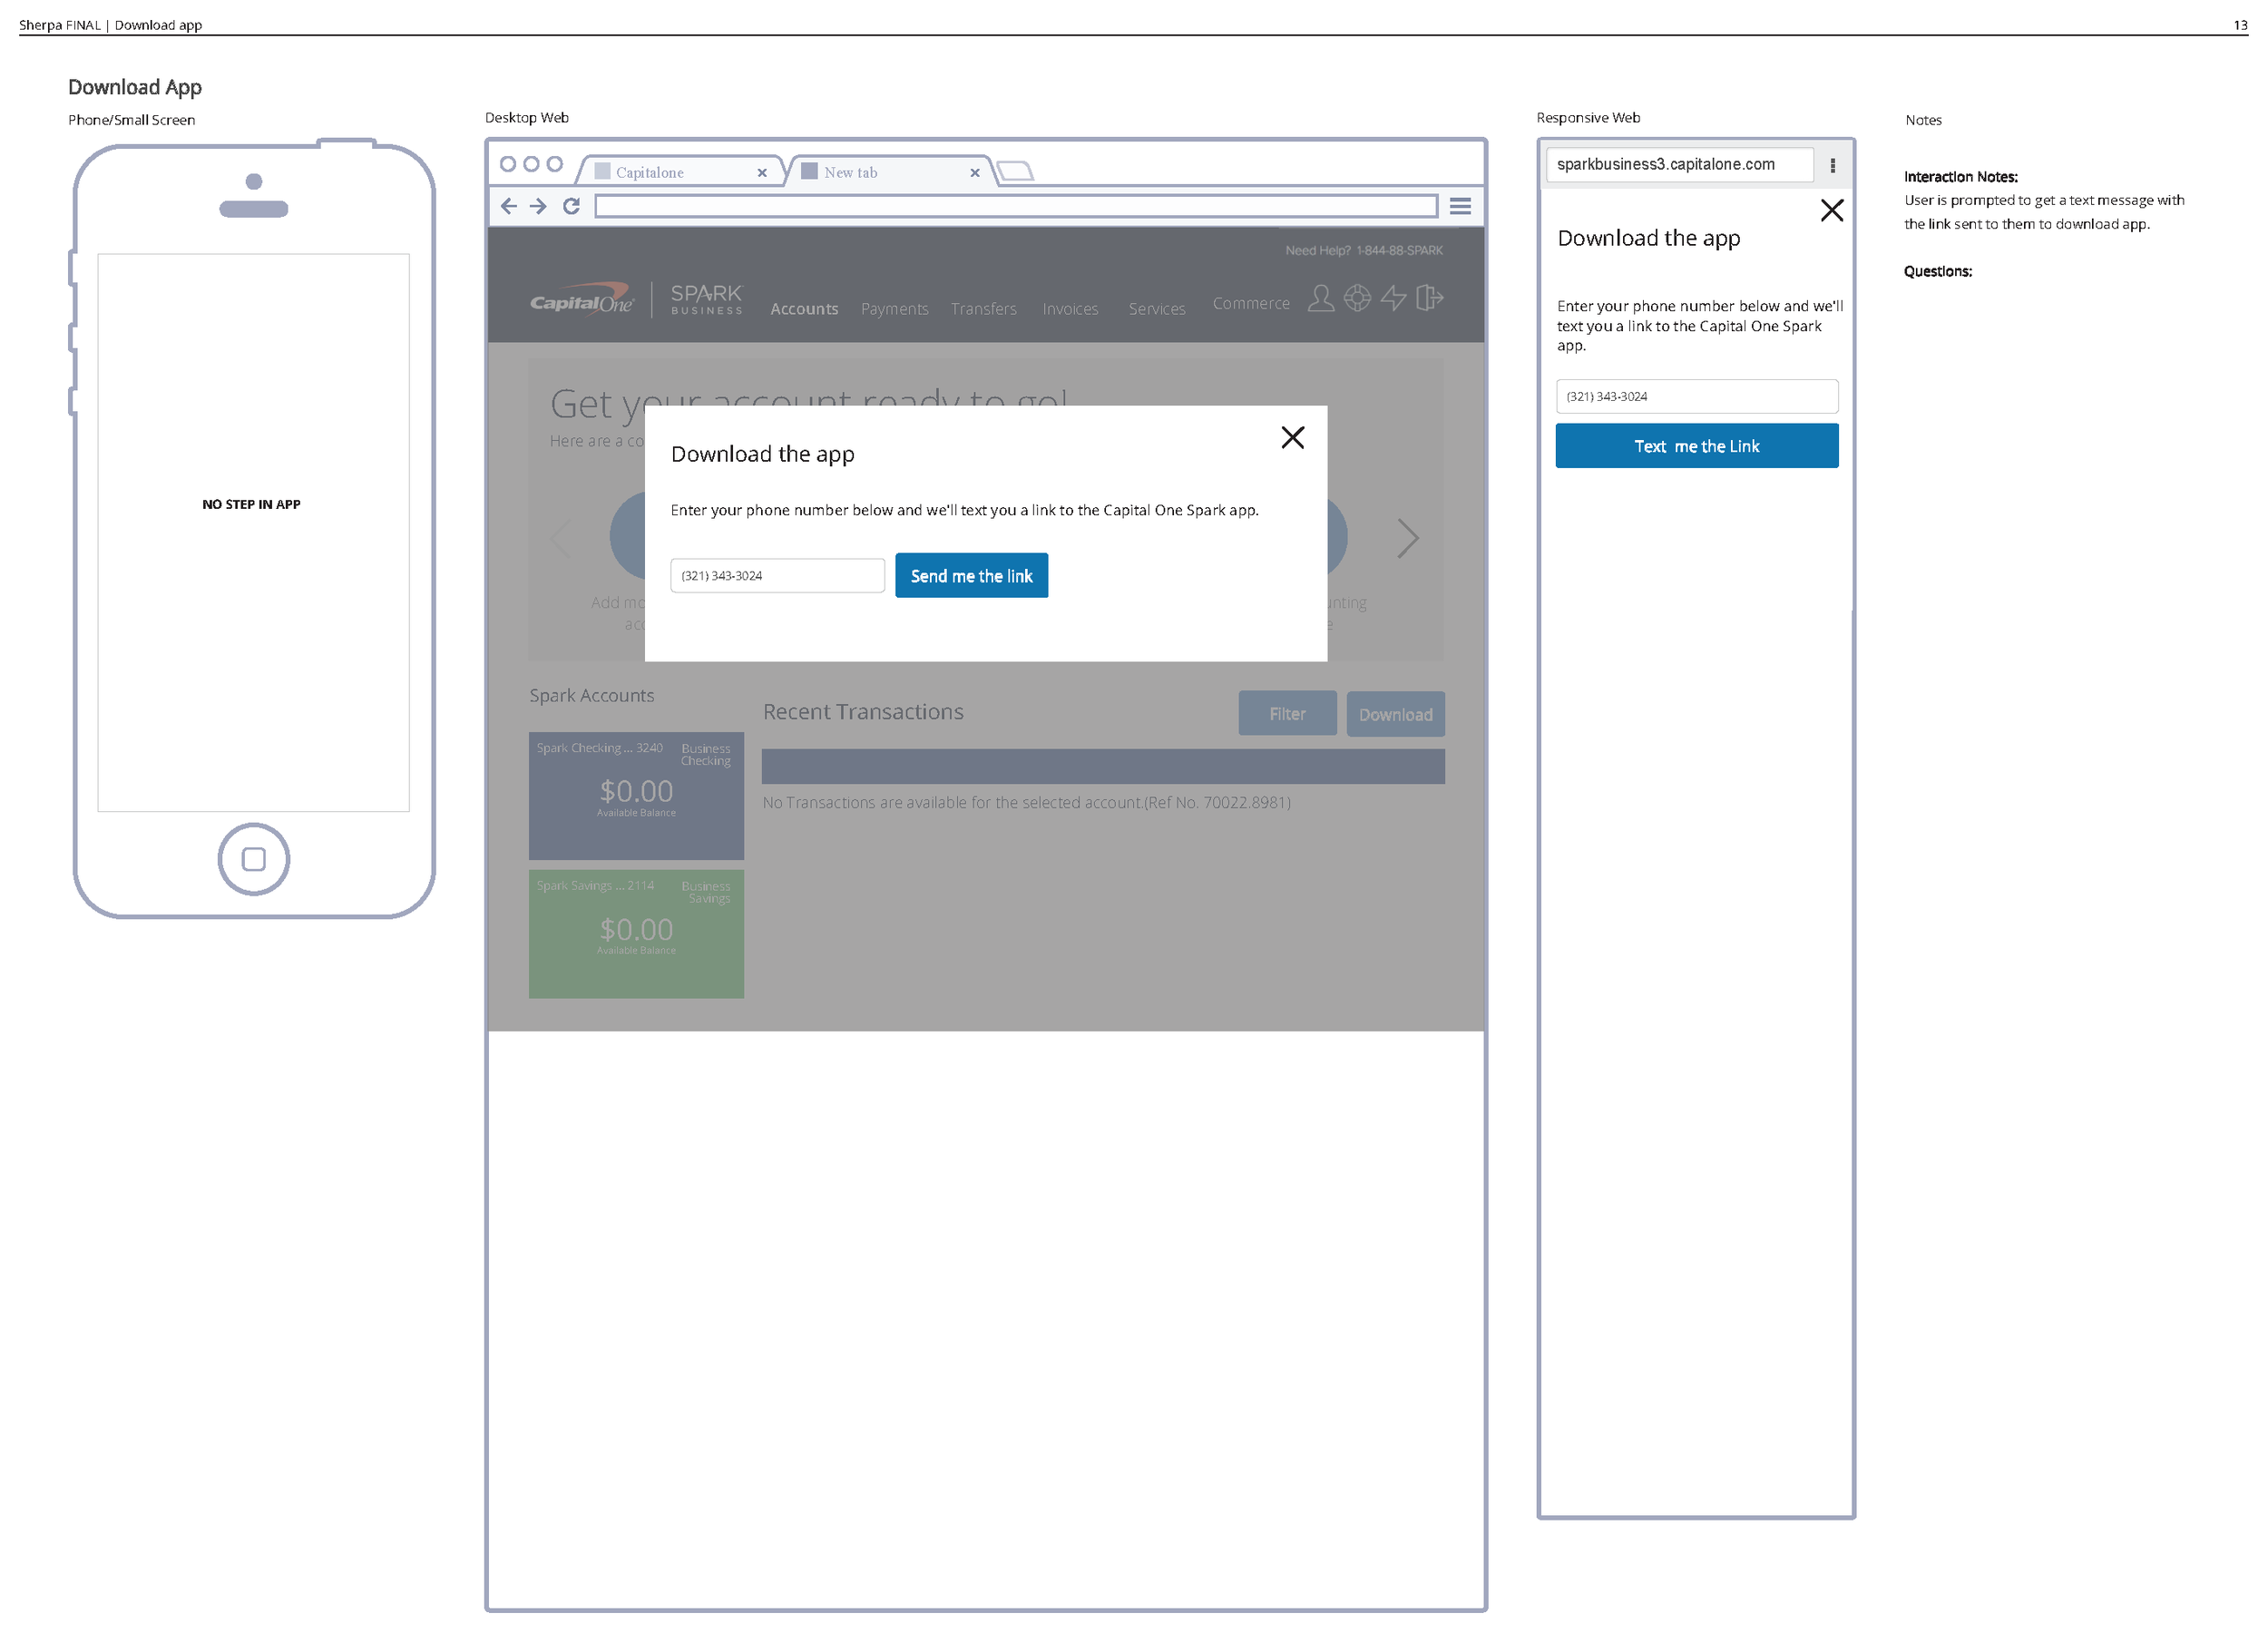 Several of the tasks were completed in existing modal flows